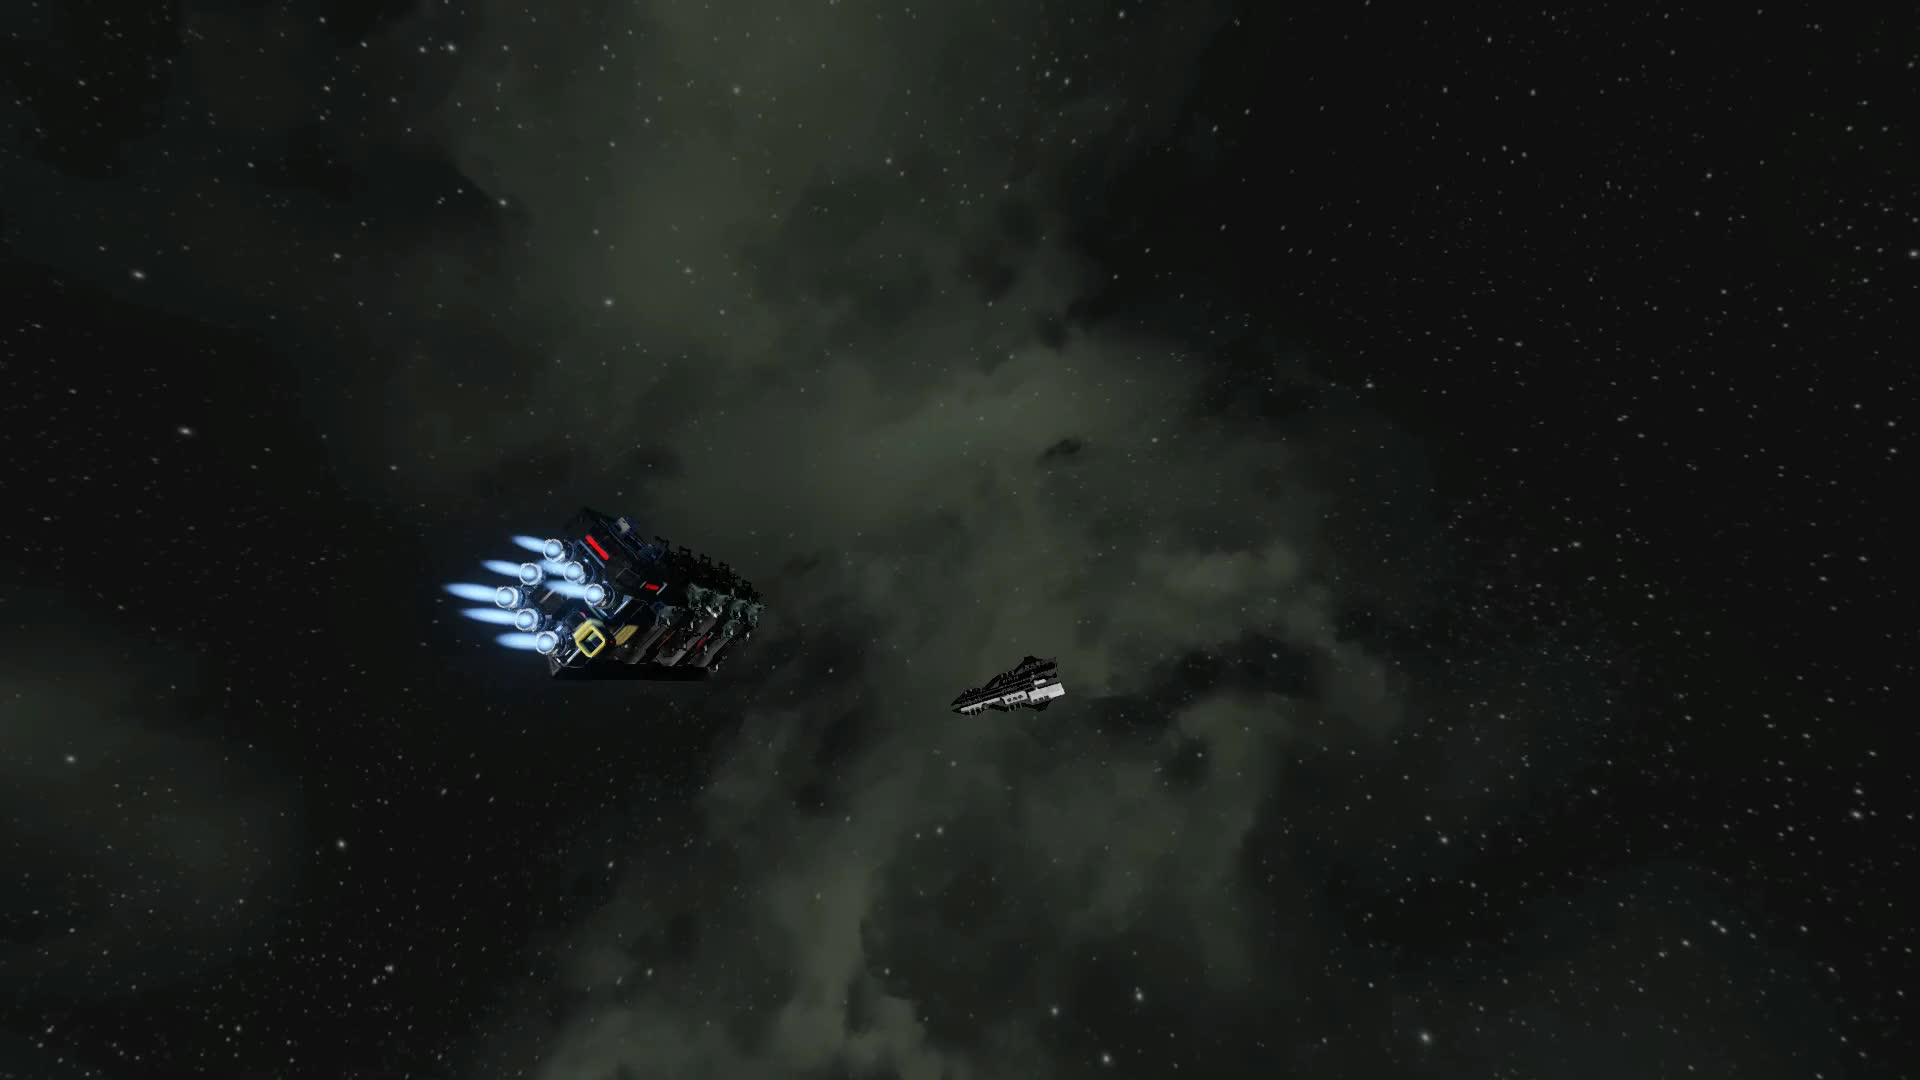 spaceengineers, Cluster Missiles GIFs